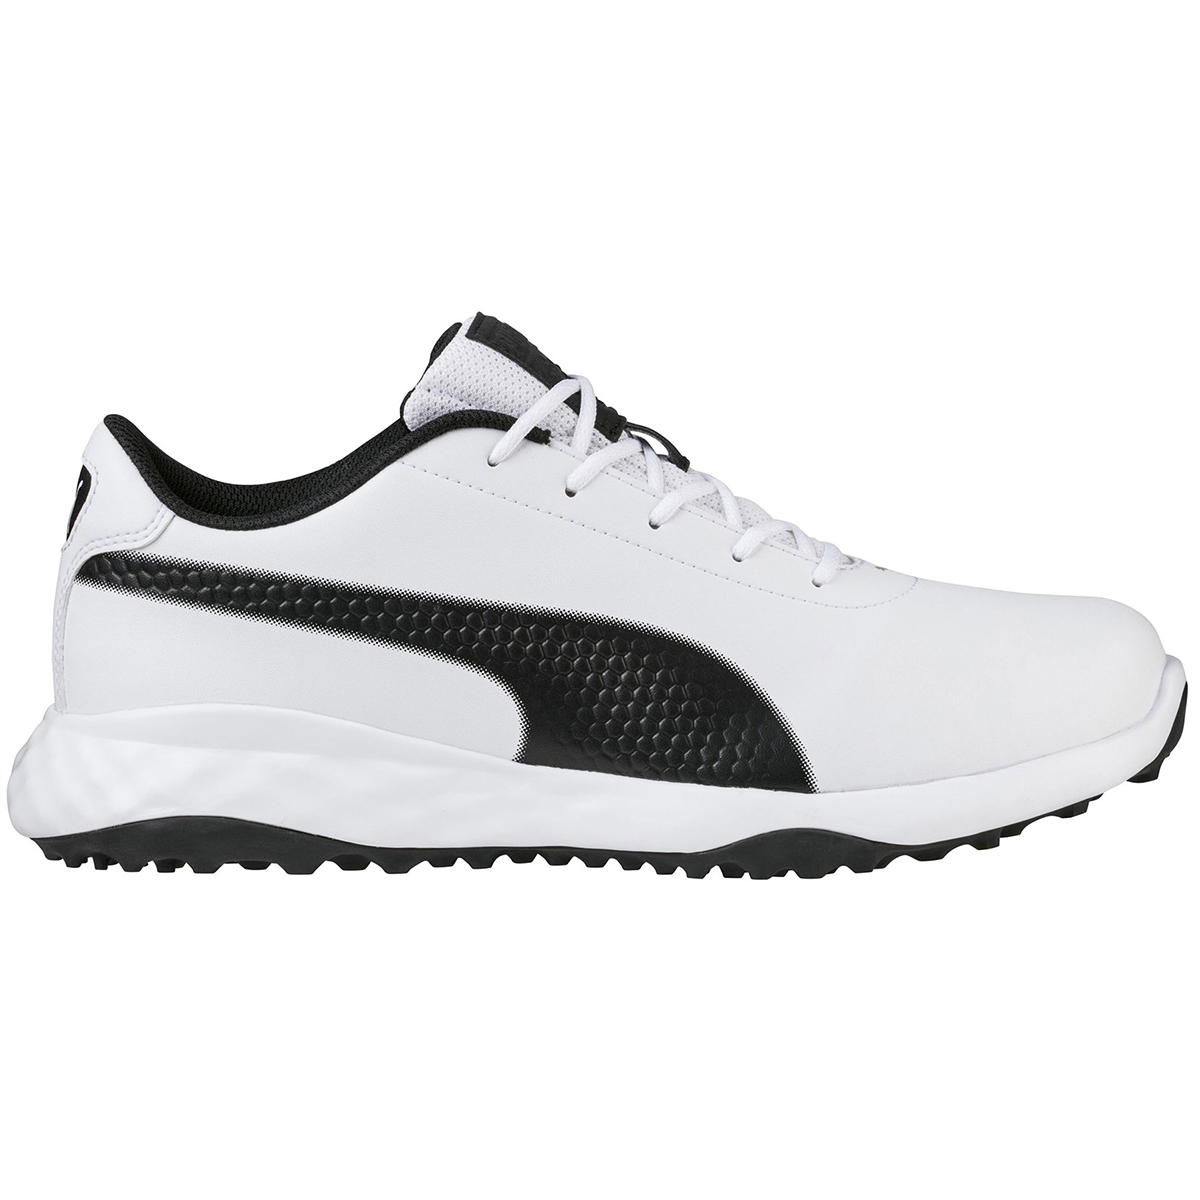 72023e32616 PUMA Golf Grip Fusion Classic Shoes from american golf